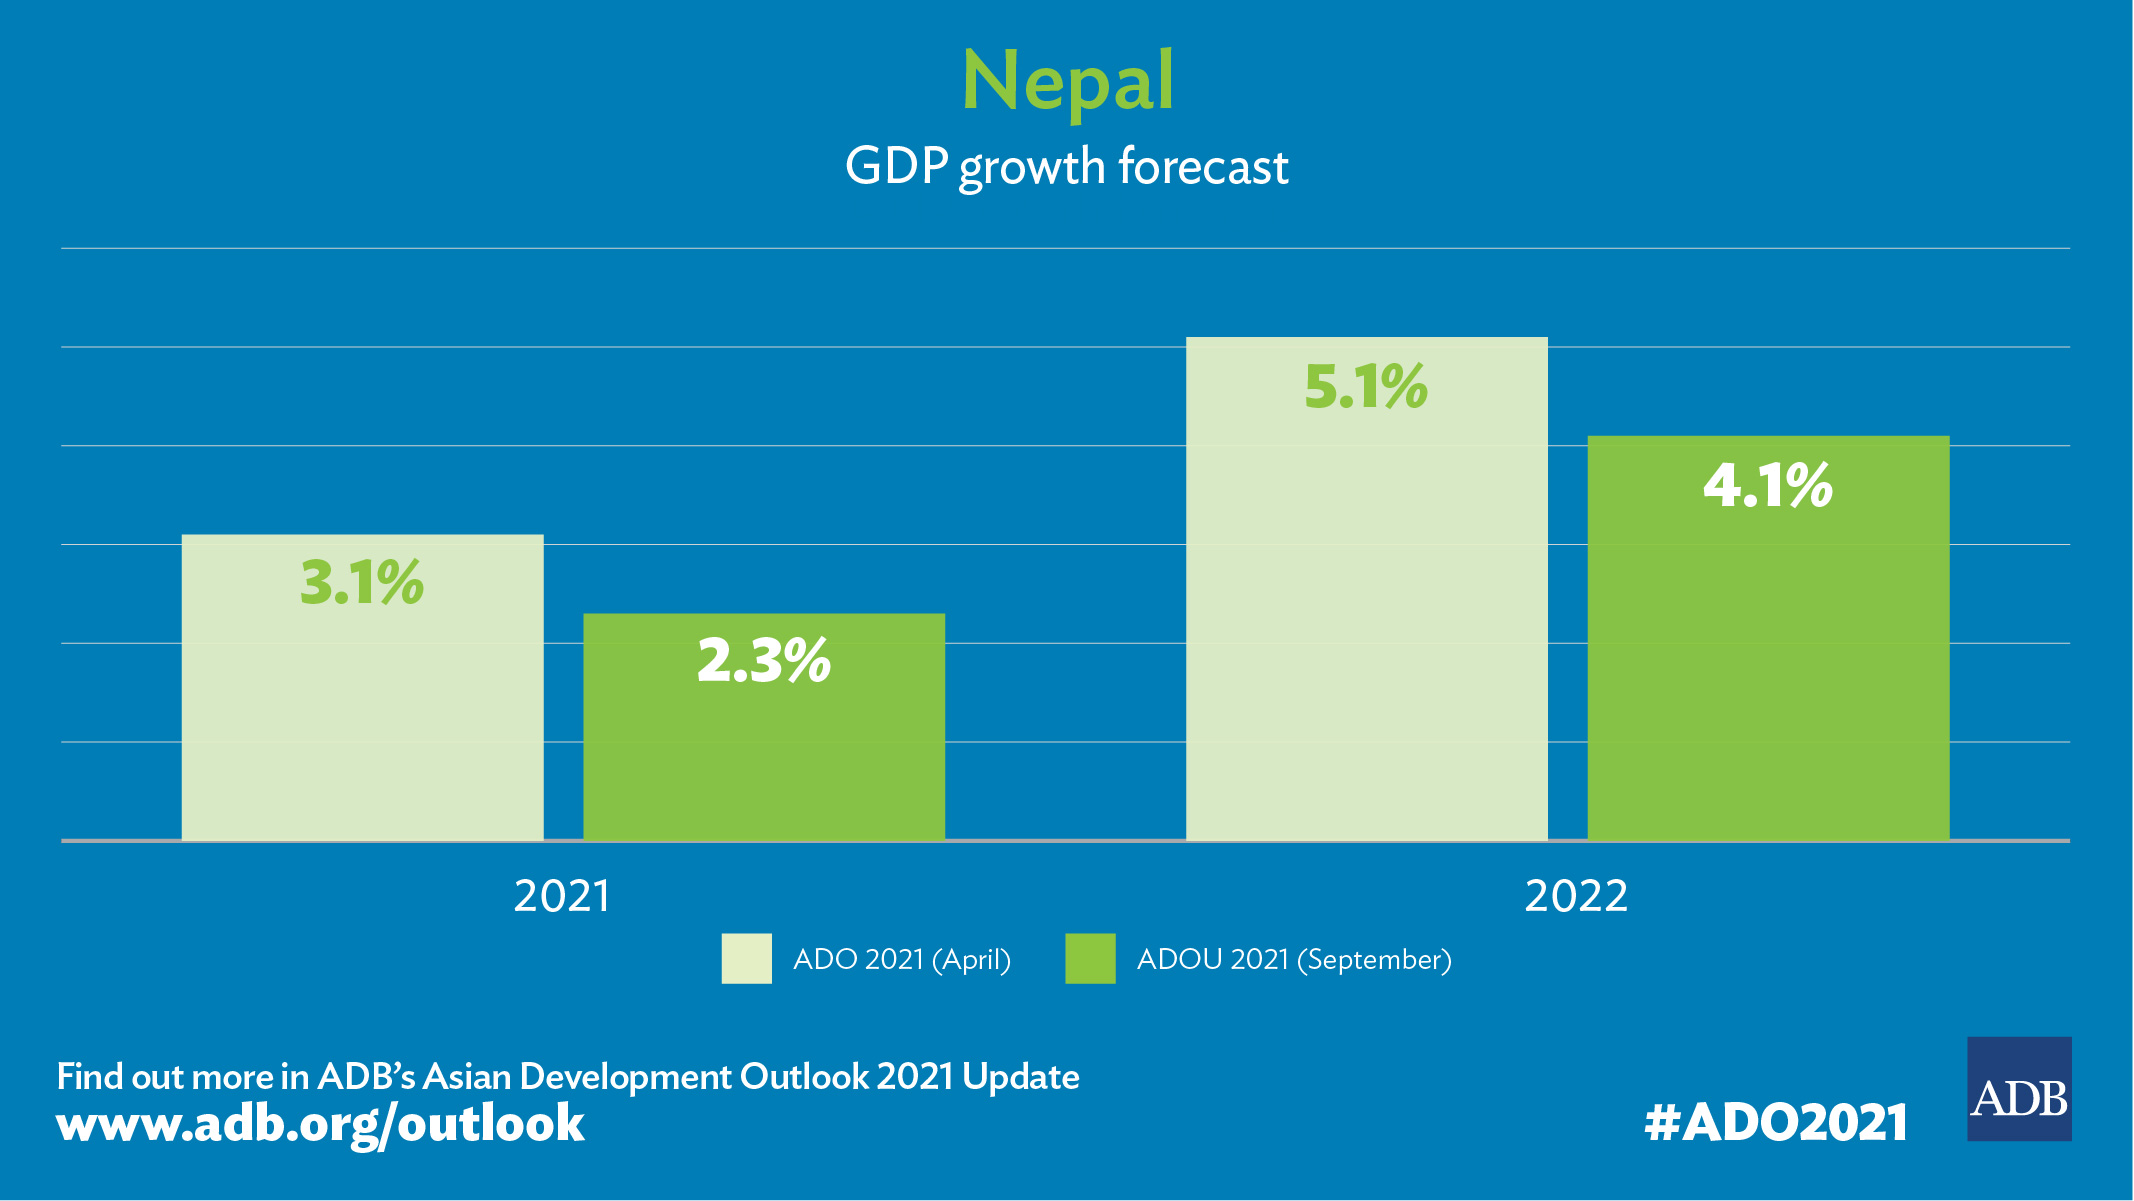 Nepal's Economy to Modestly Grow in FY2022